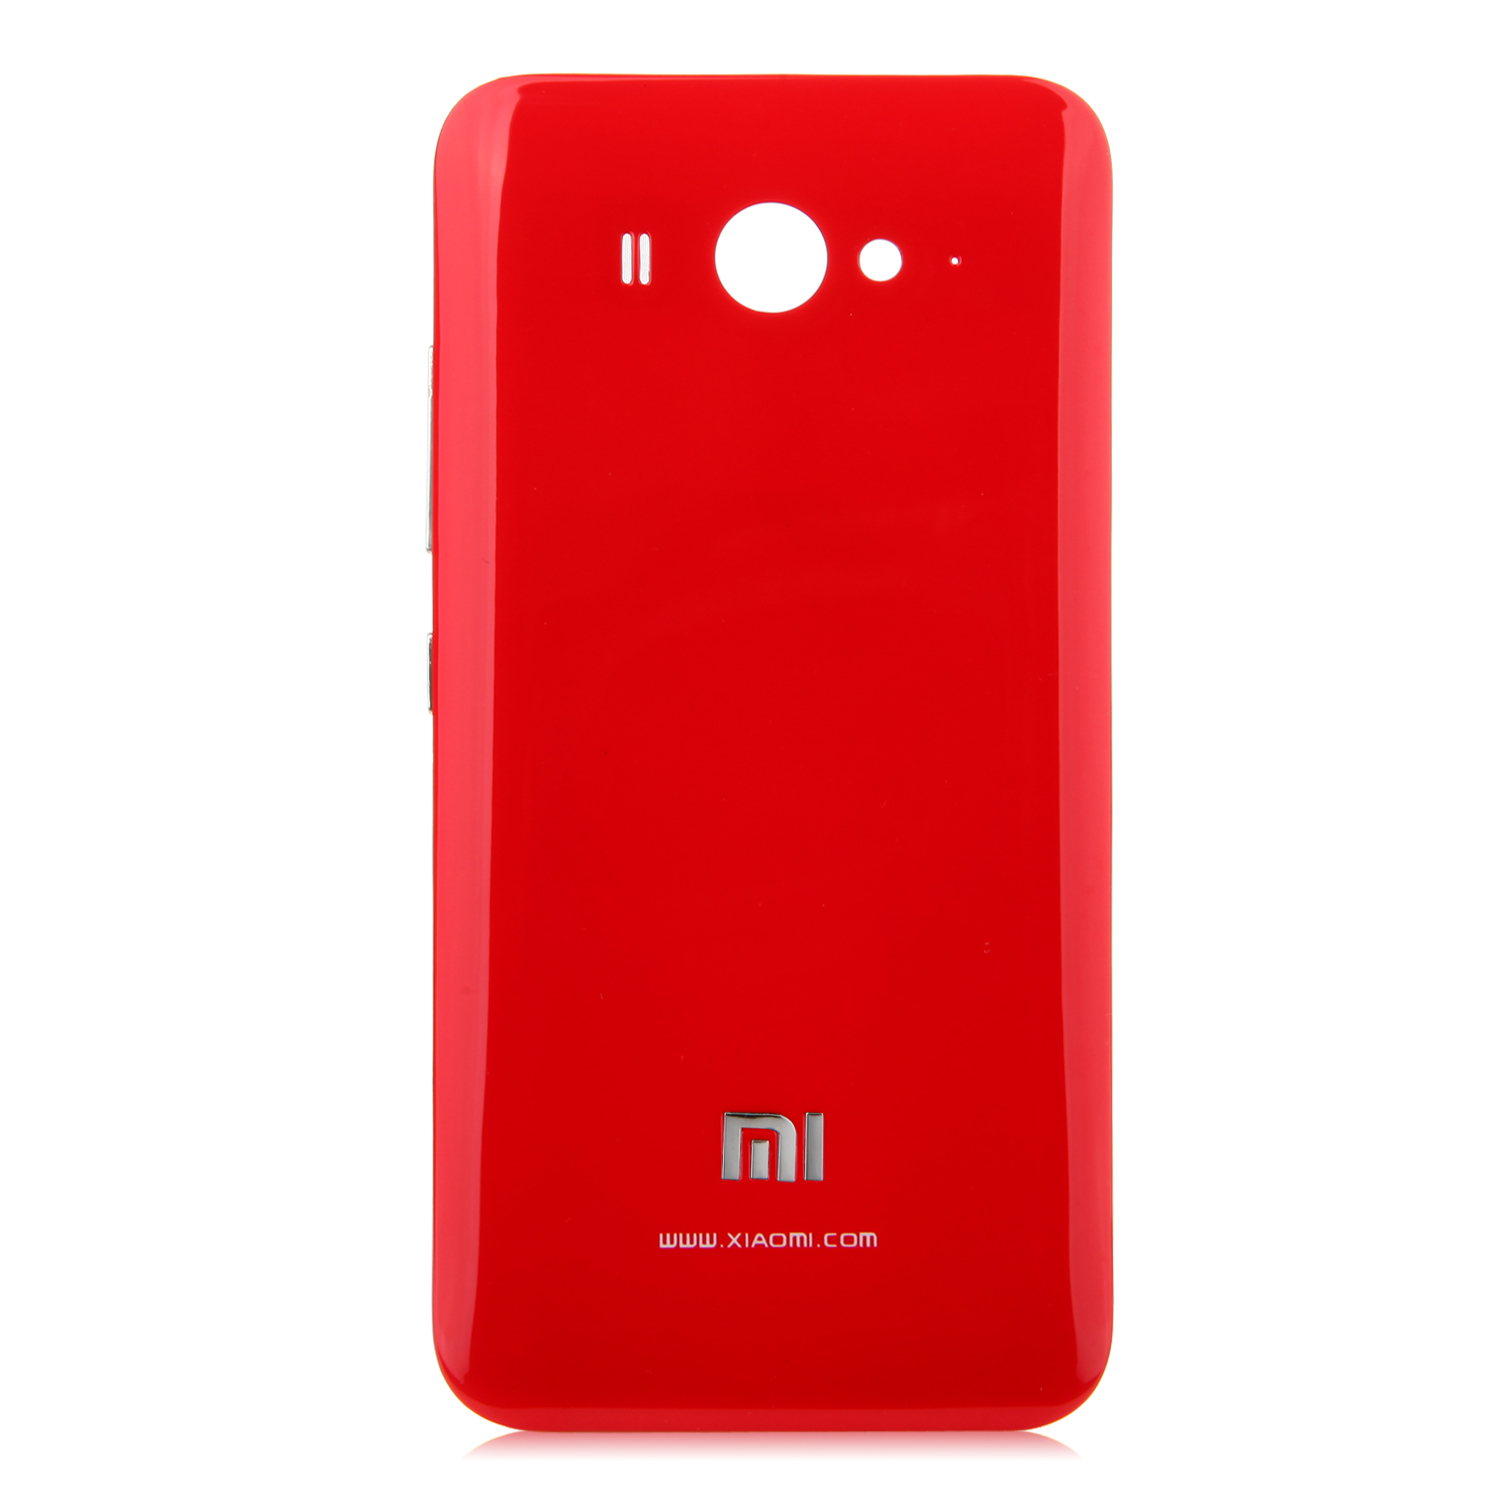 Replacement Battery Cover Back Case for XIAOMI 2S Smartphone Red